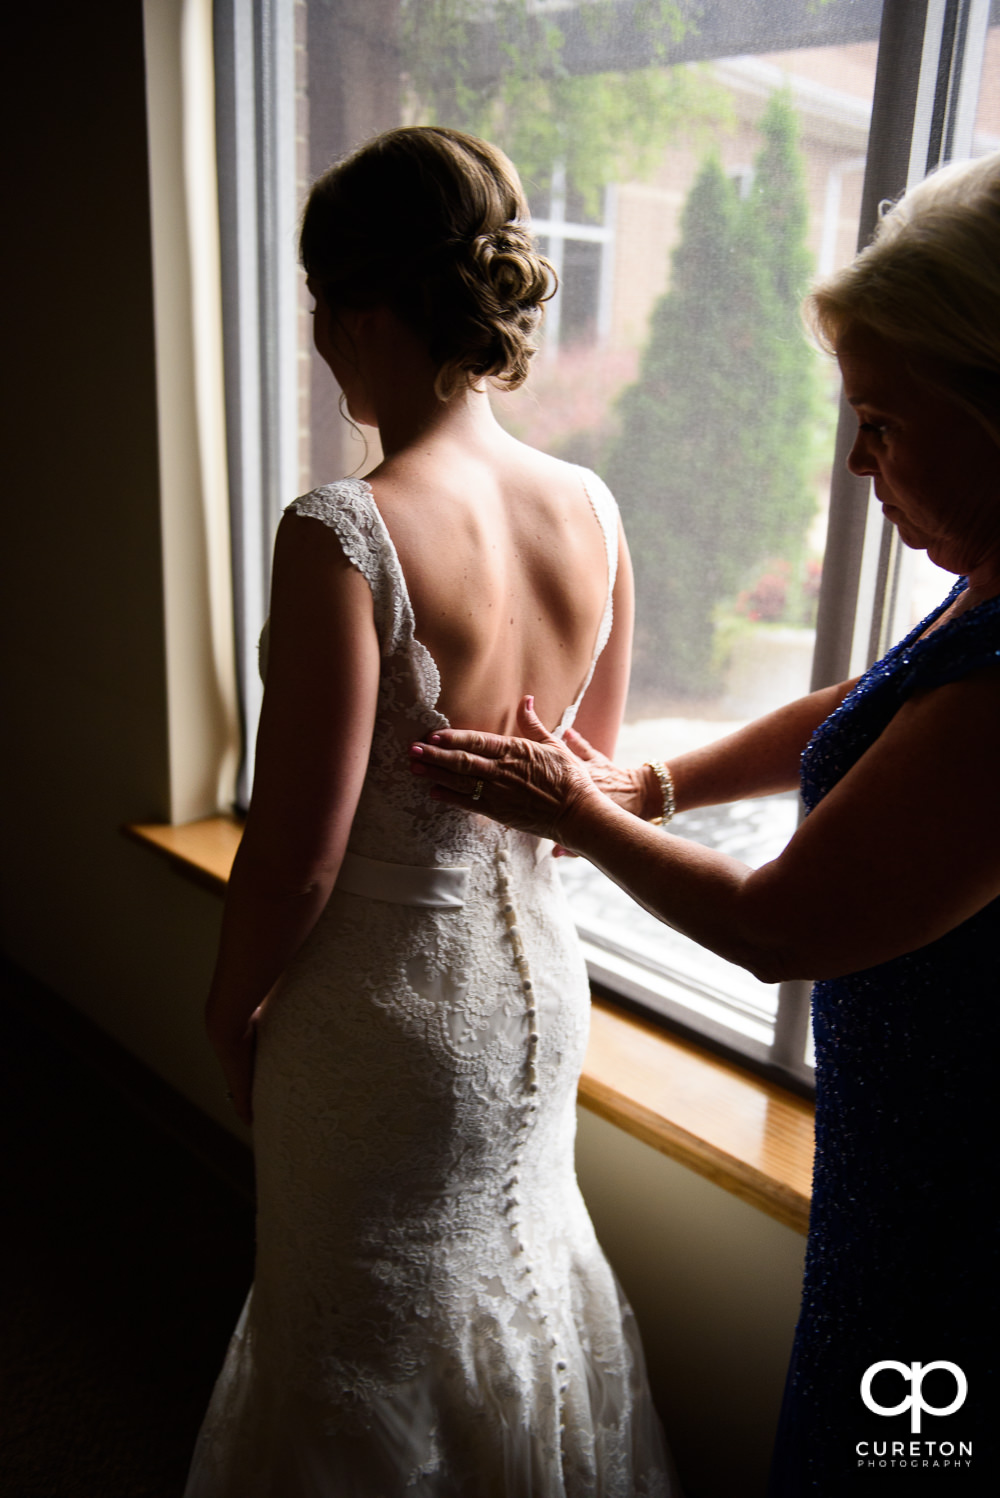 Bride's mother helping her into the dress.